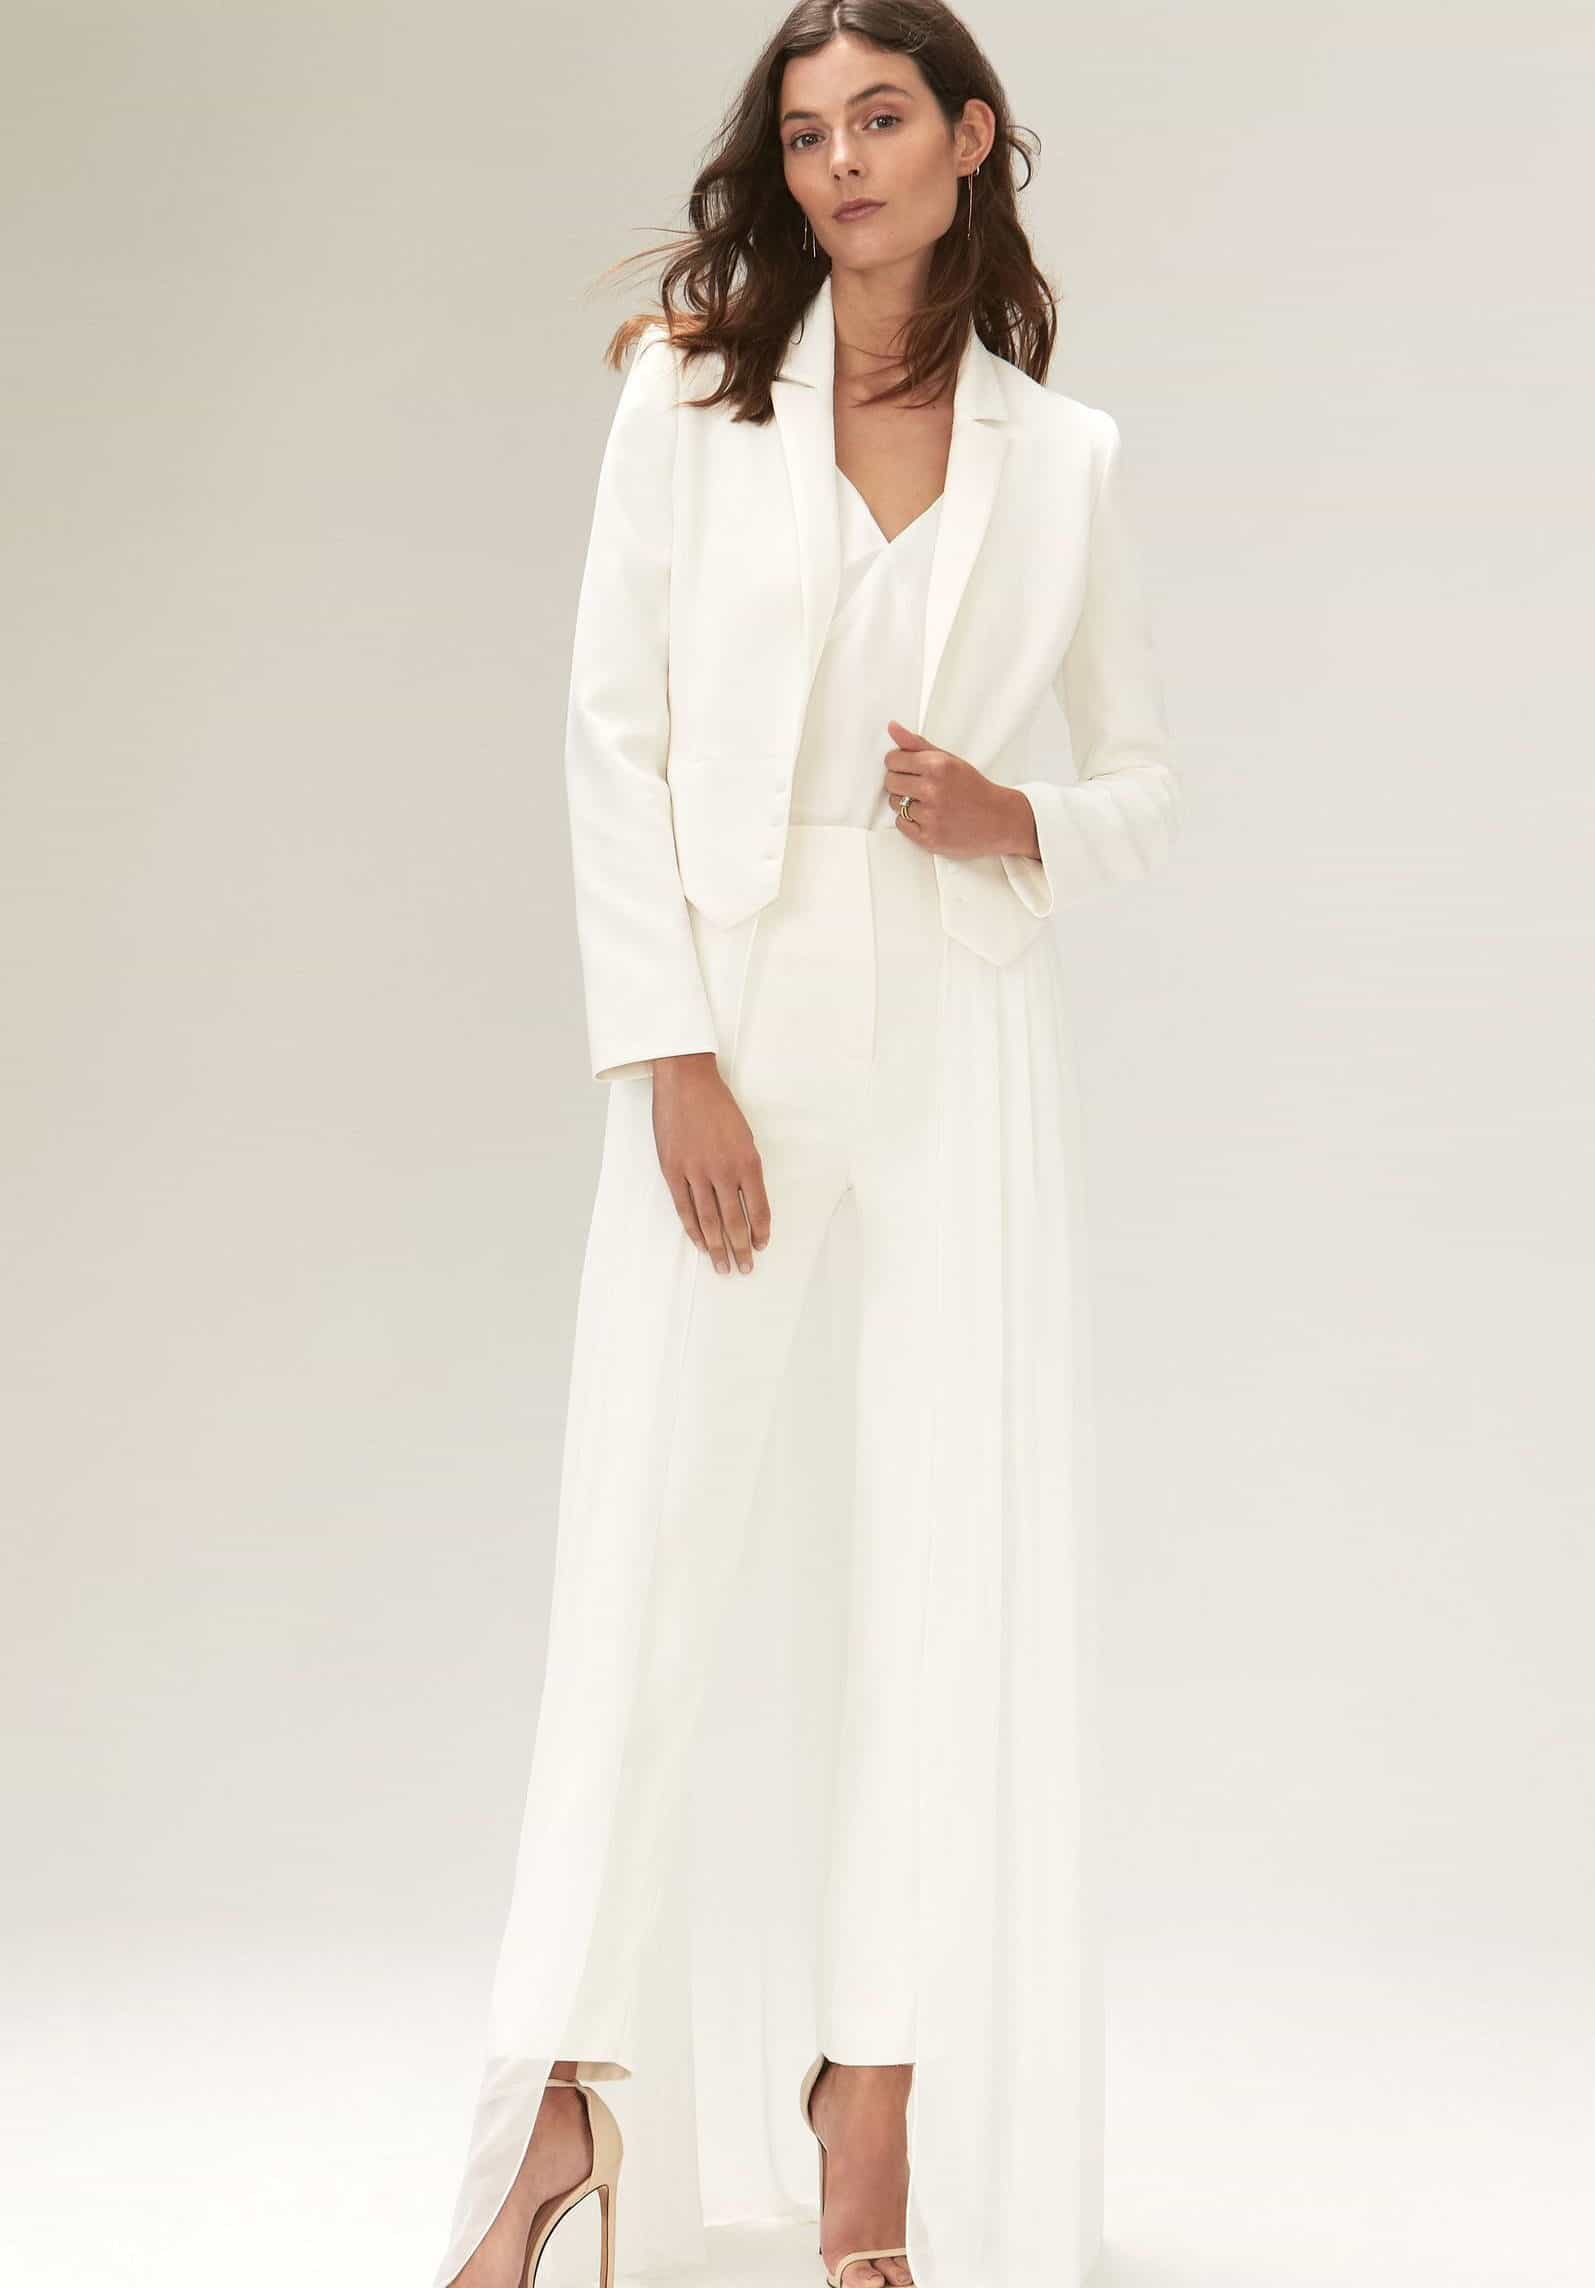 suit wedding dress collection fall 2019 by Savannah Miller